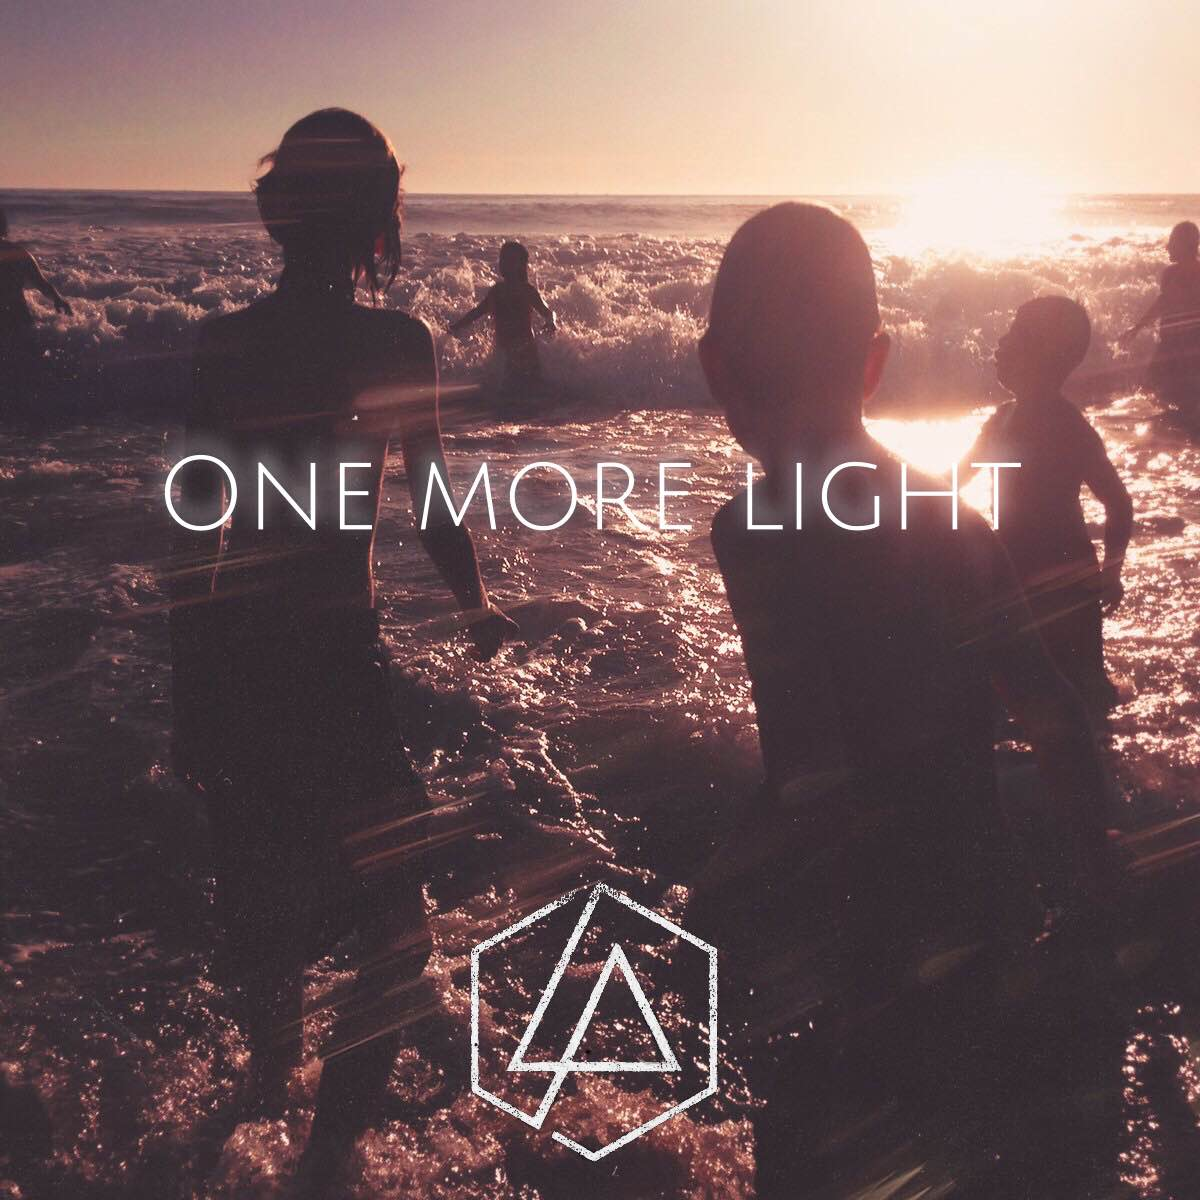 Download Linkin Park - One More Light (2017) Full Album FLAC